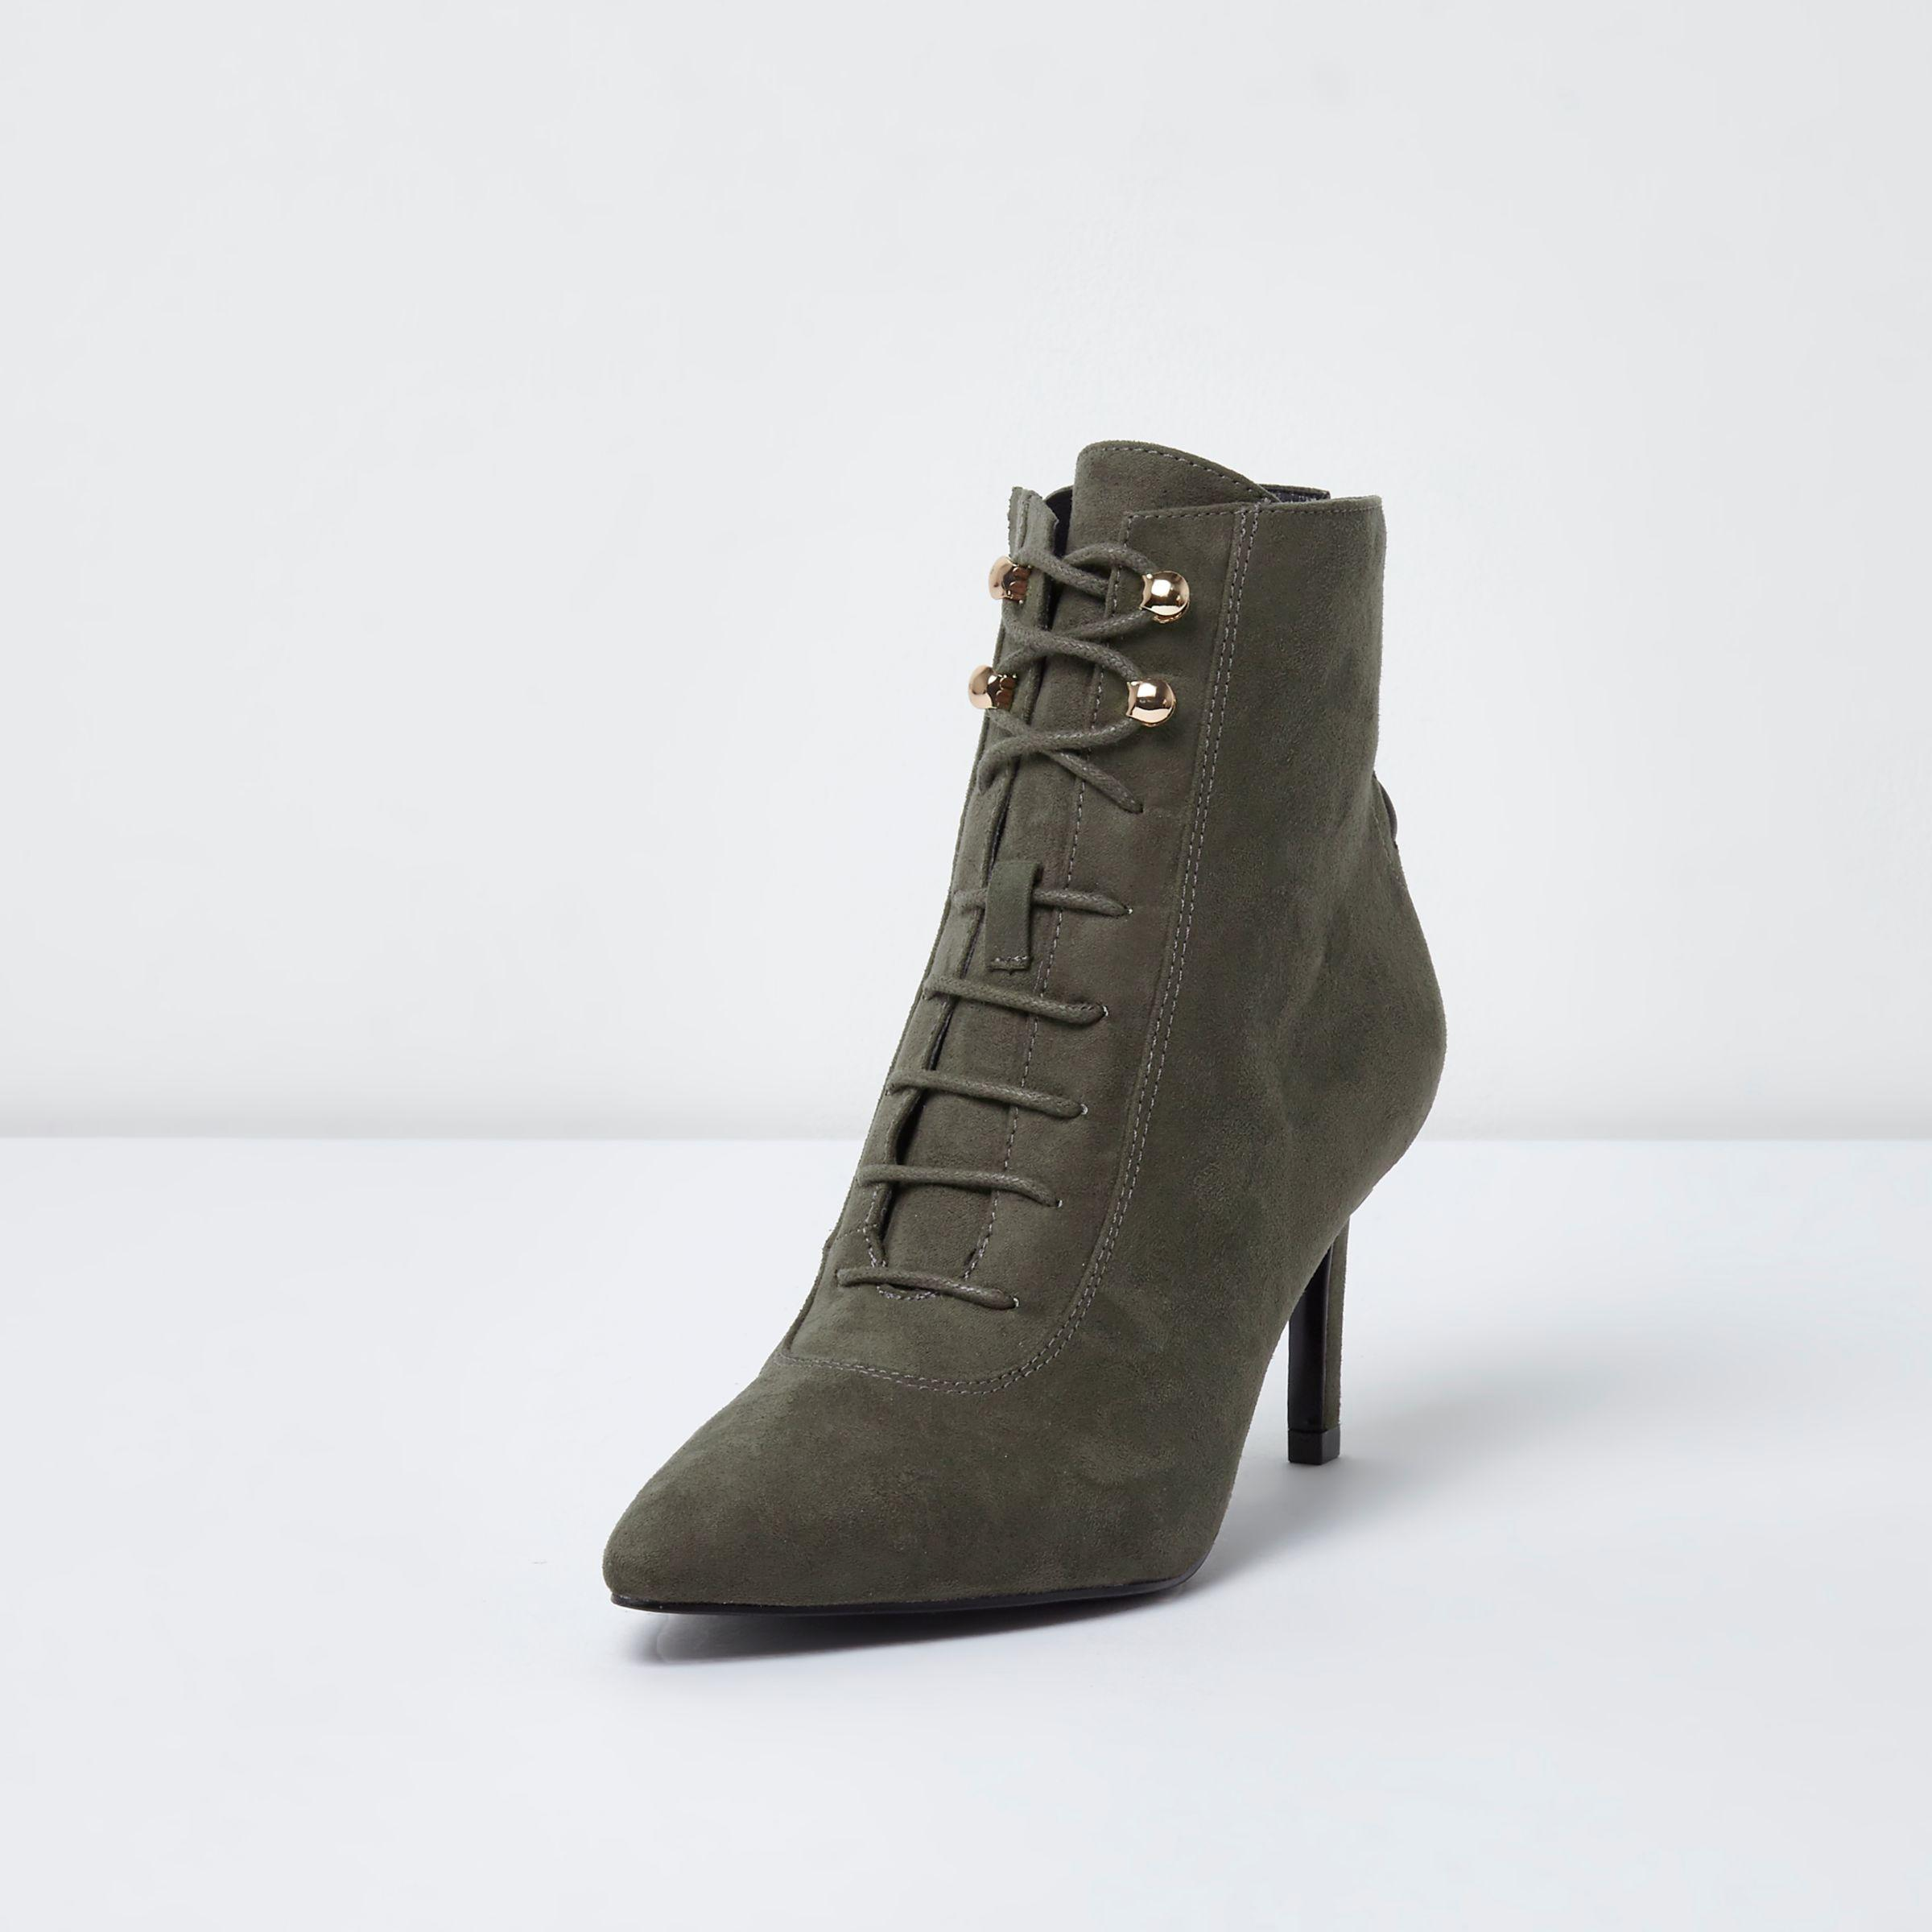 River Island Grey Pointed Lace-up Kitten Heel Ankle Boots in Grey